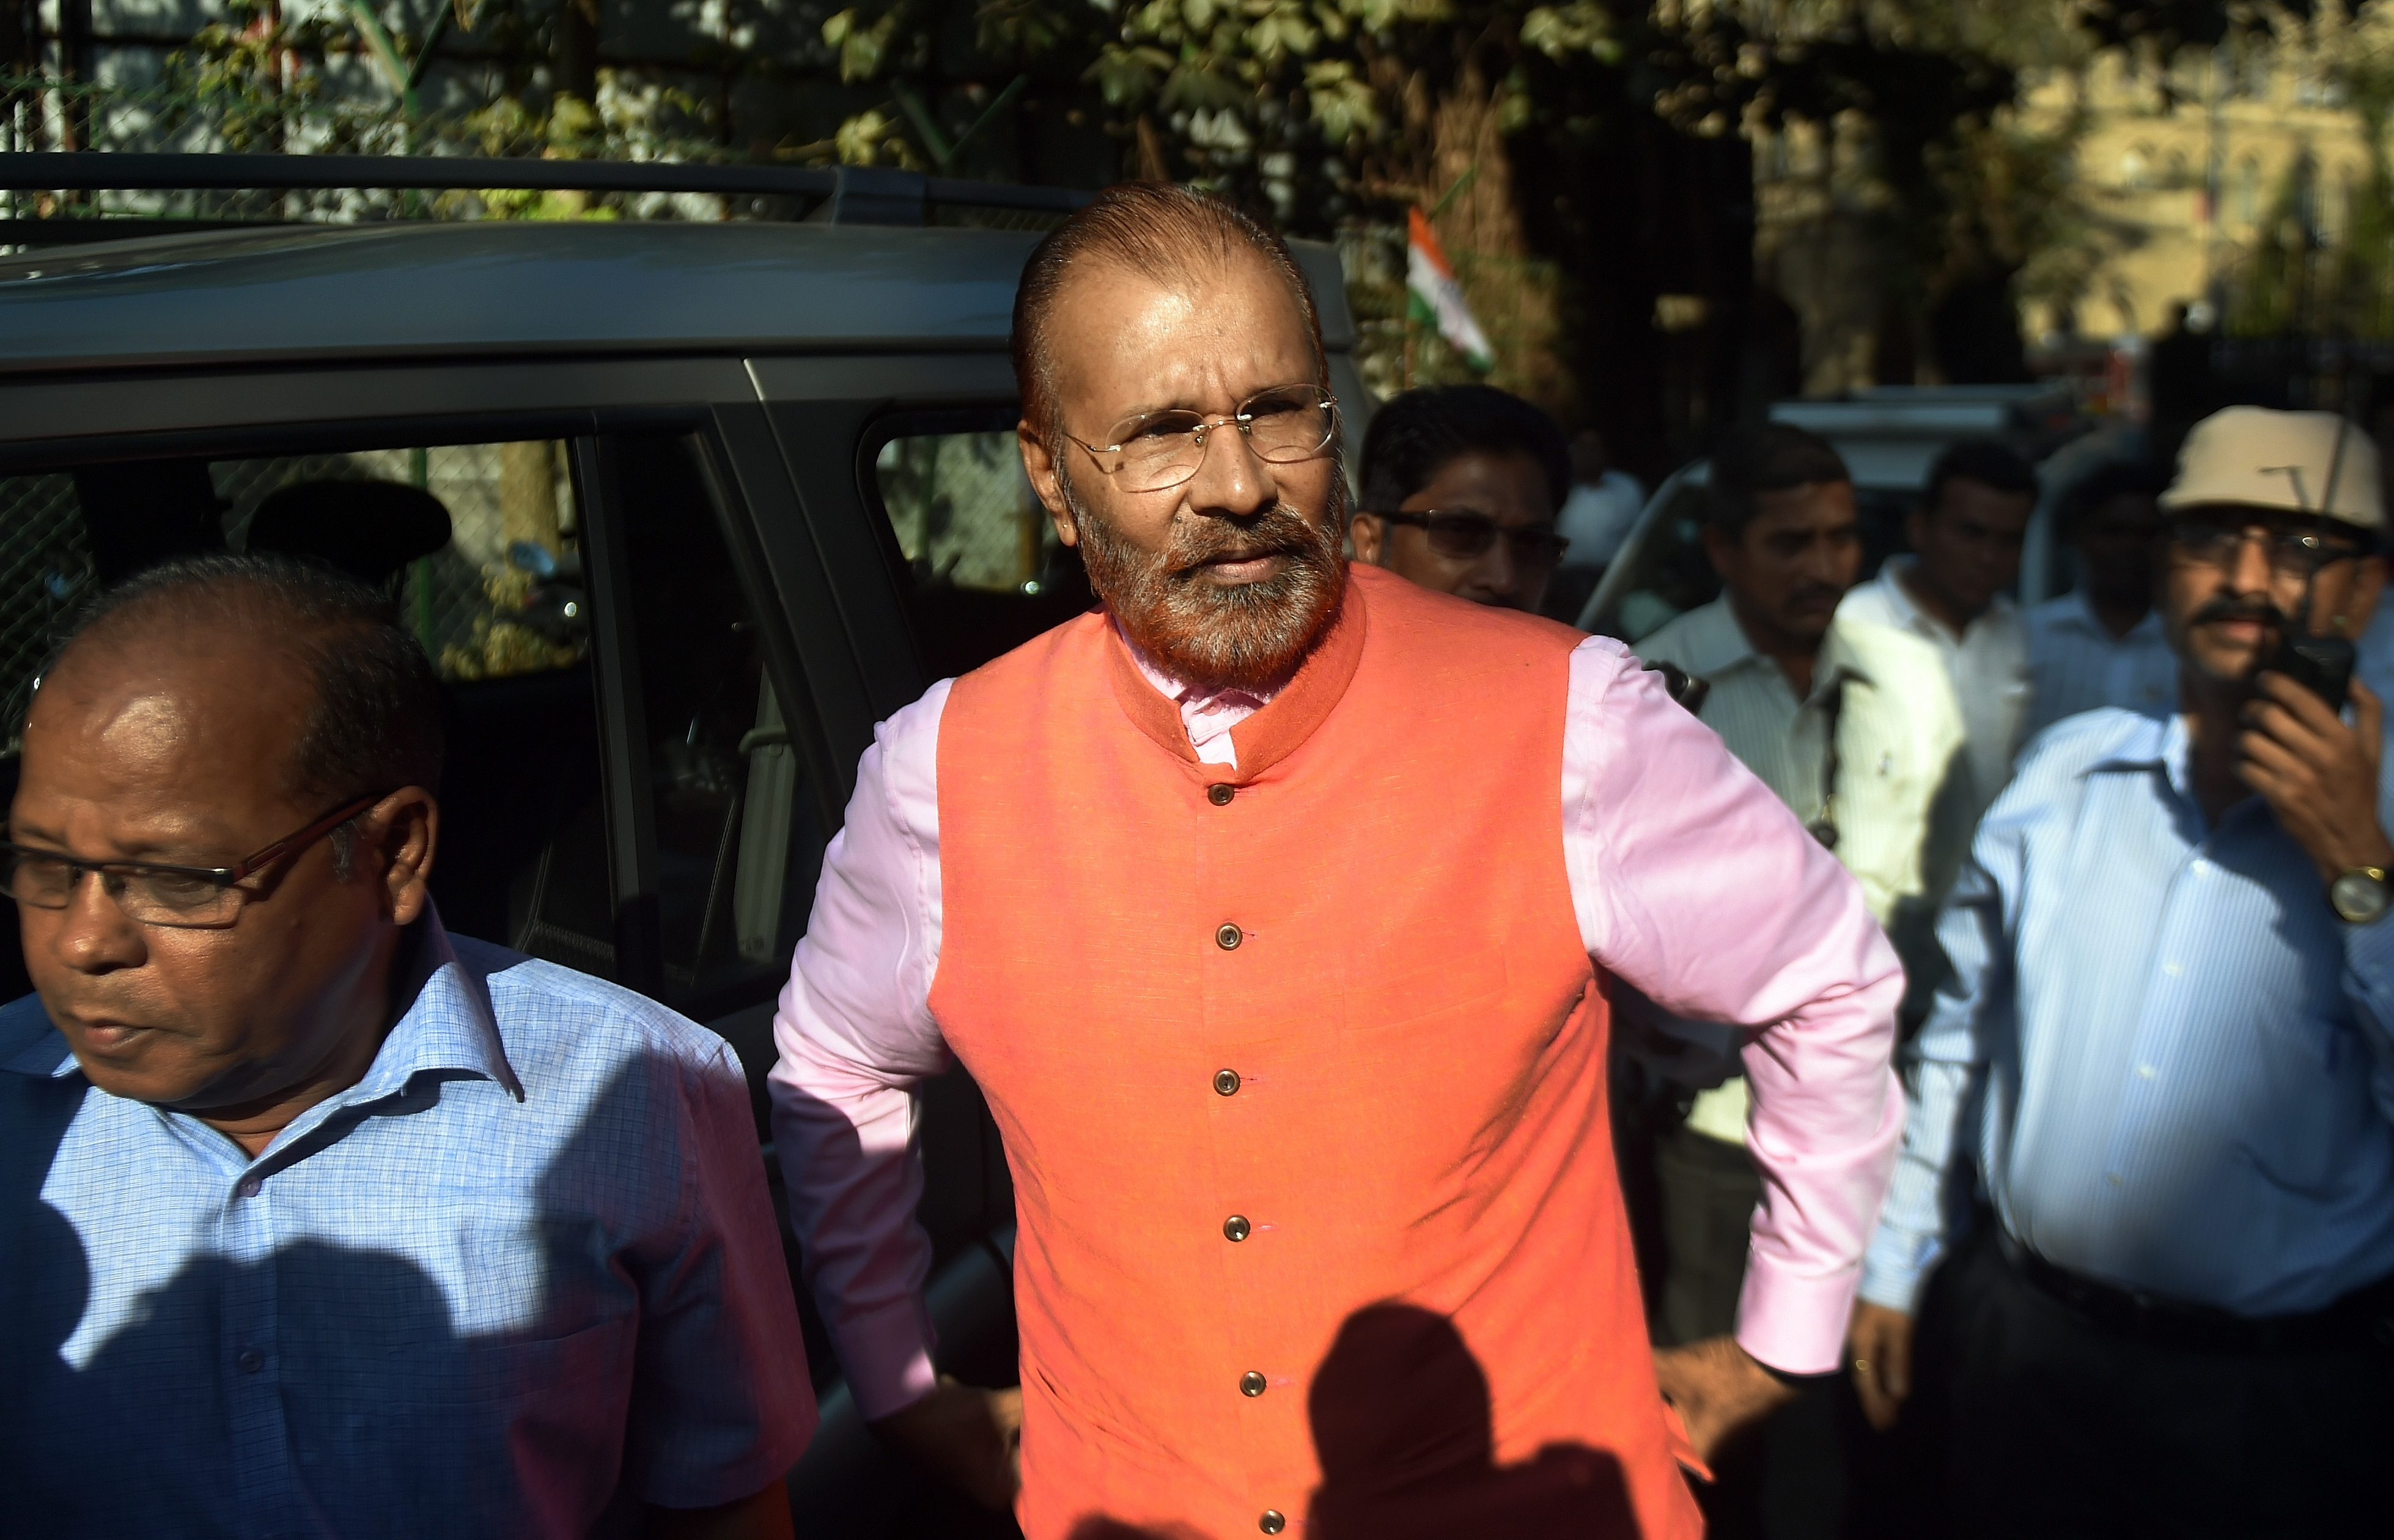 Gujarat police officer DG Vanzara allegedly played a key role in the fake encounter killings of Sohrabuddin Sheikh and Tulsiram Prajapati. Photo credit: AFP